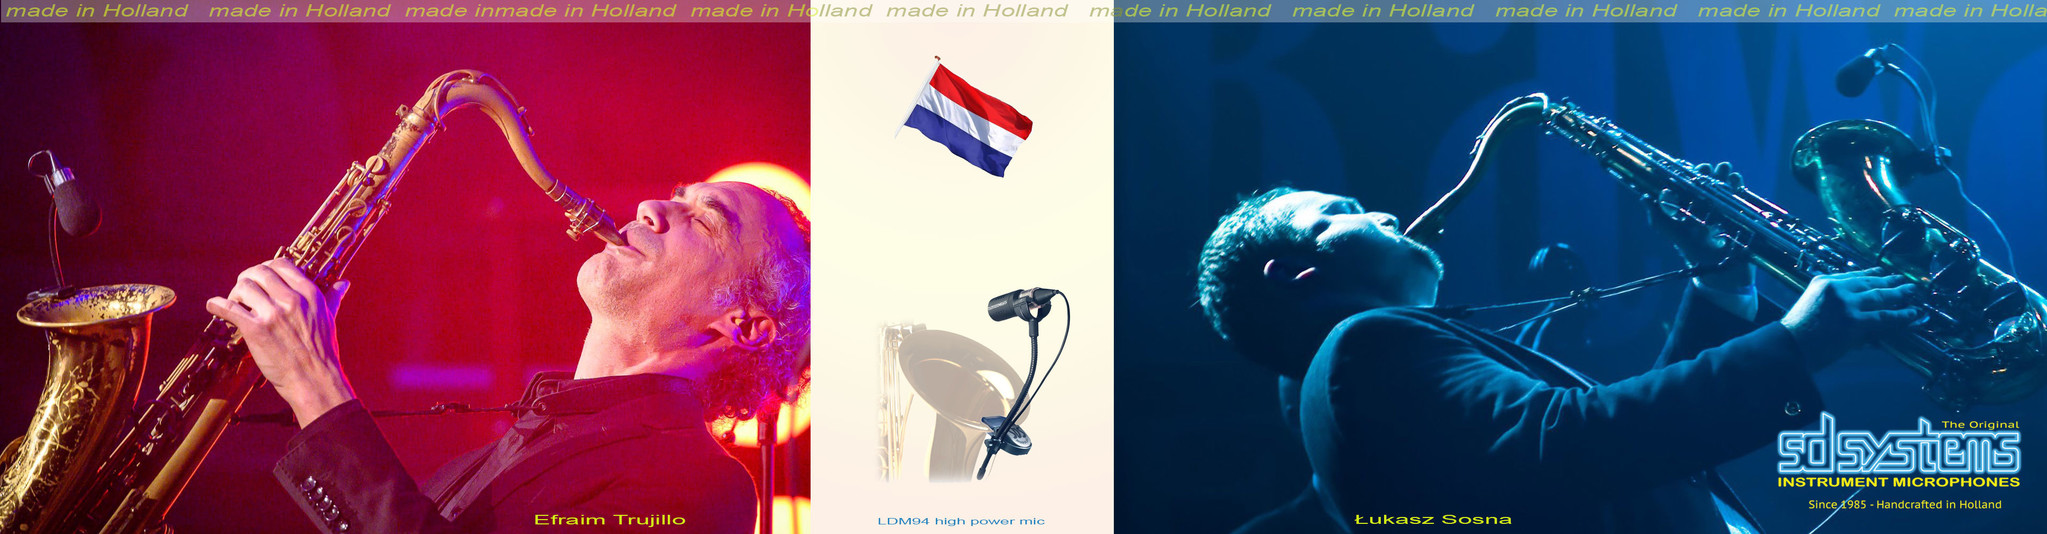 5 made in Holland Graph